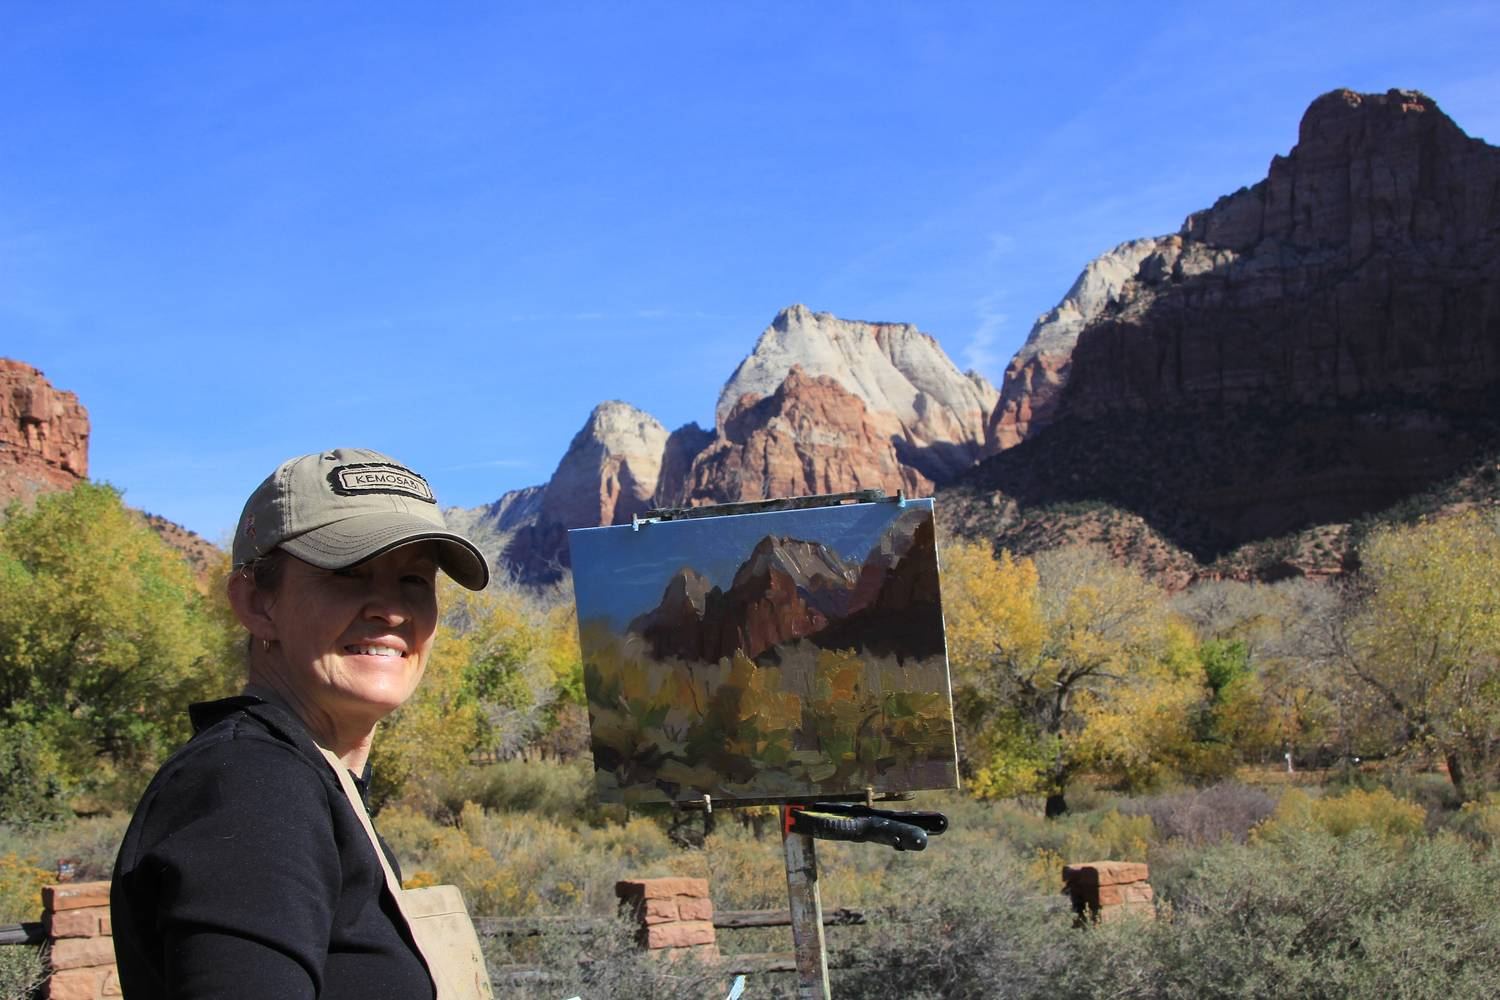 Zions Park near the entrance, November 2013 by Susette Gertsch